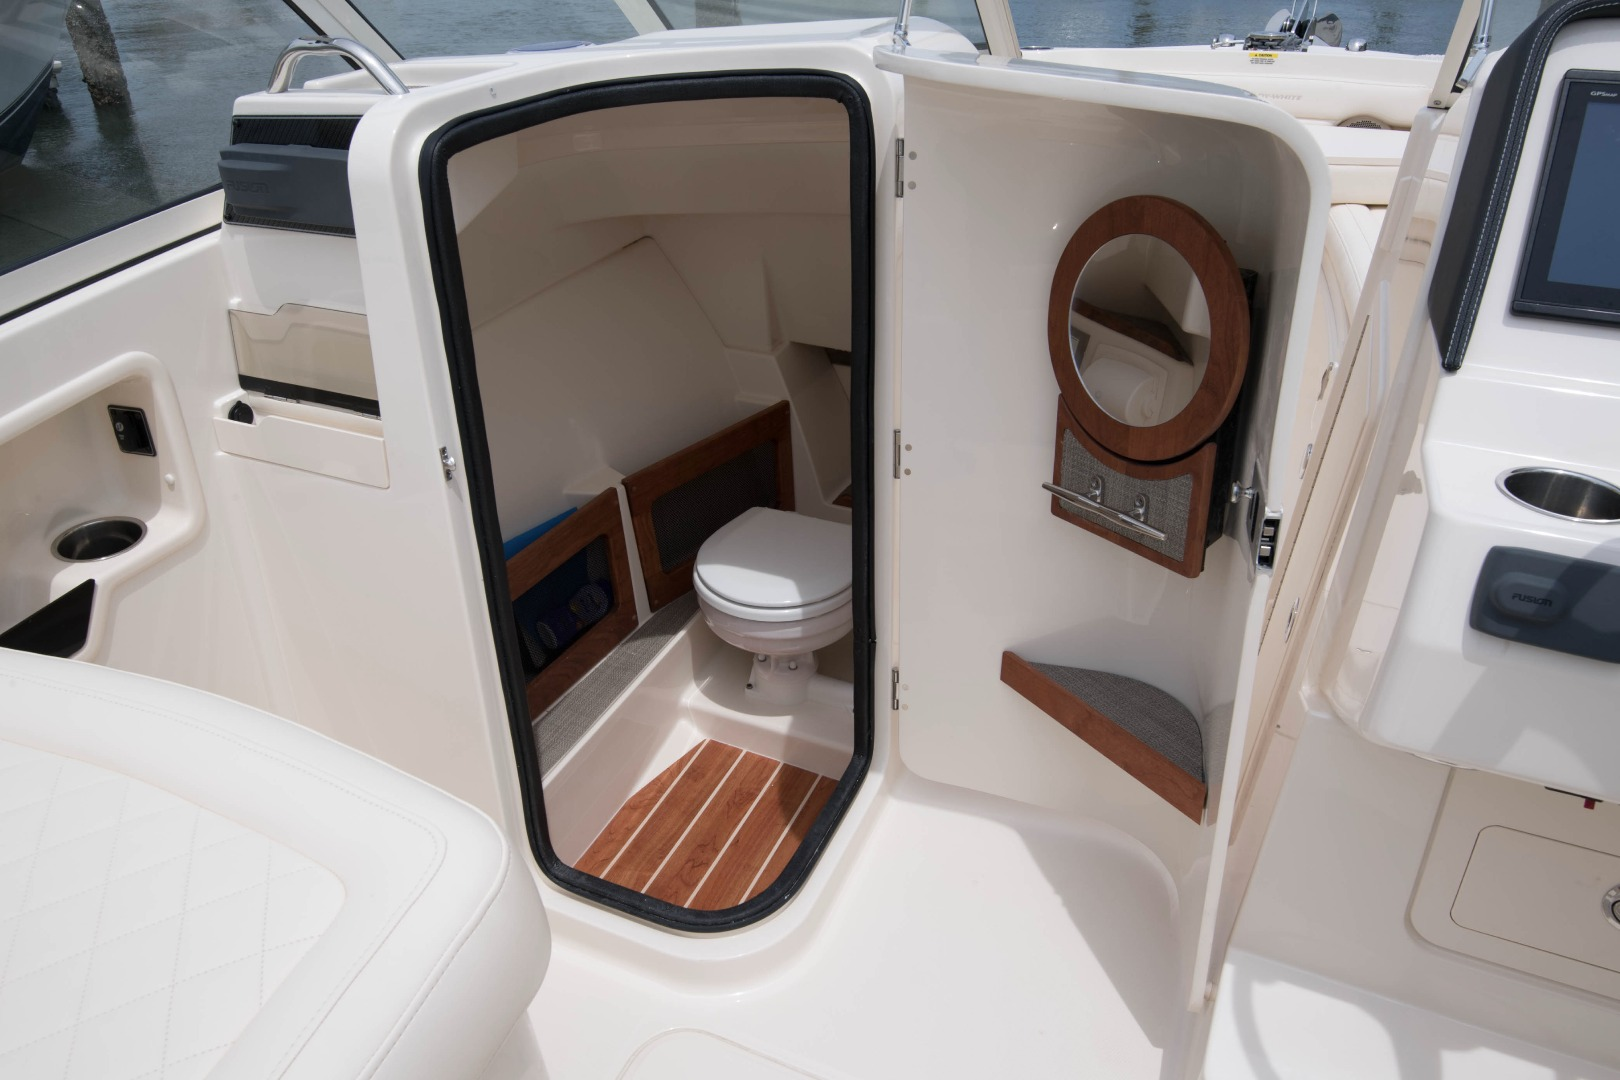 Boating Tips: What to Look For in a Console Head Compartment